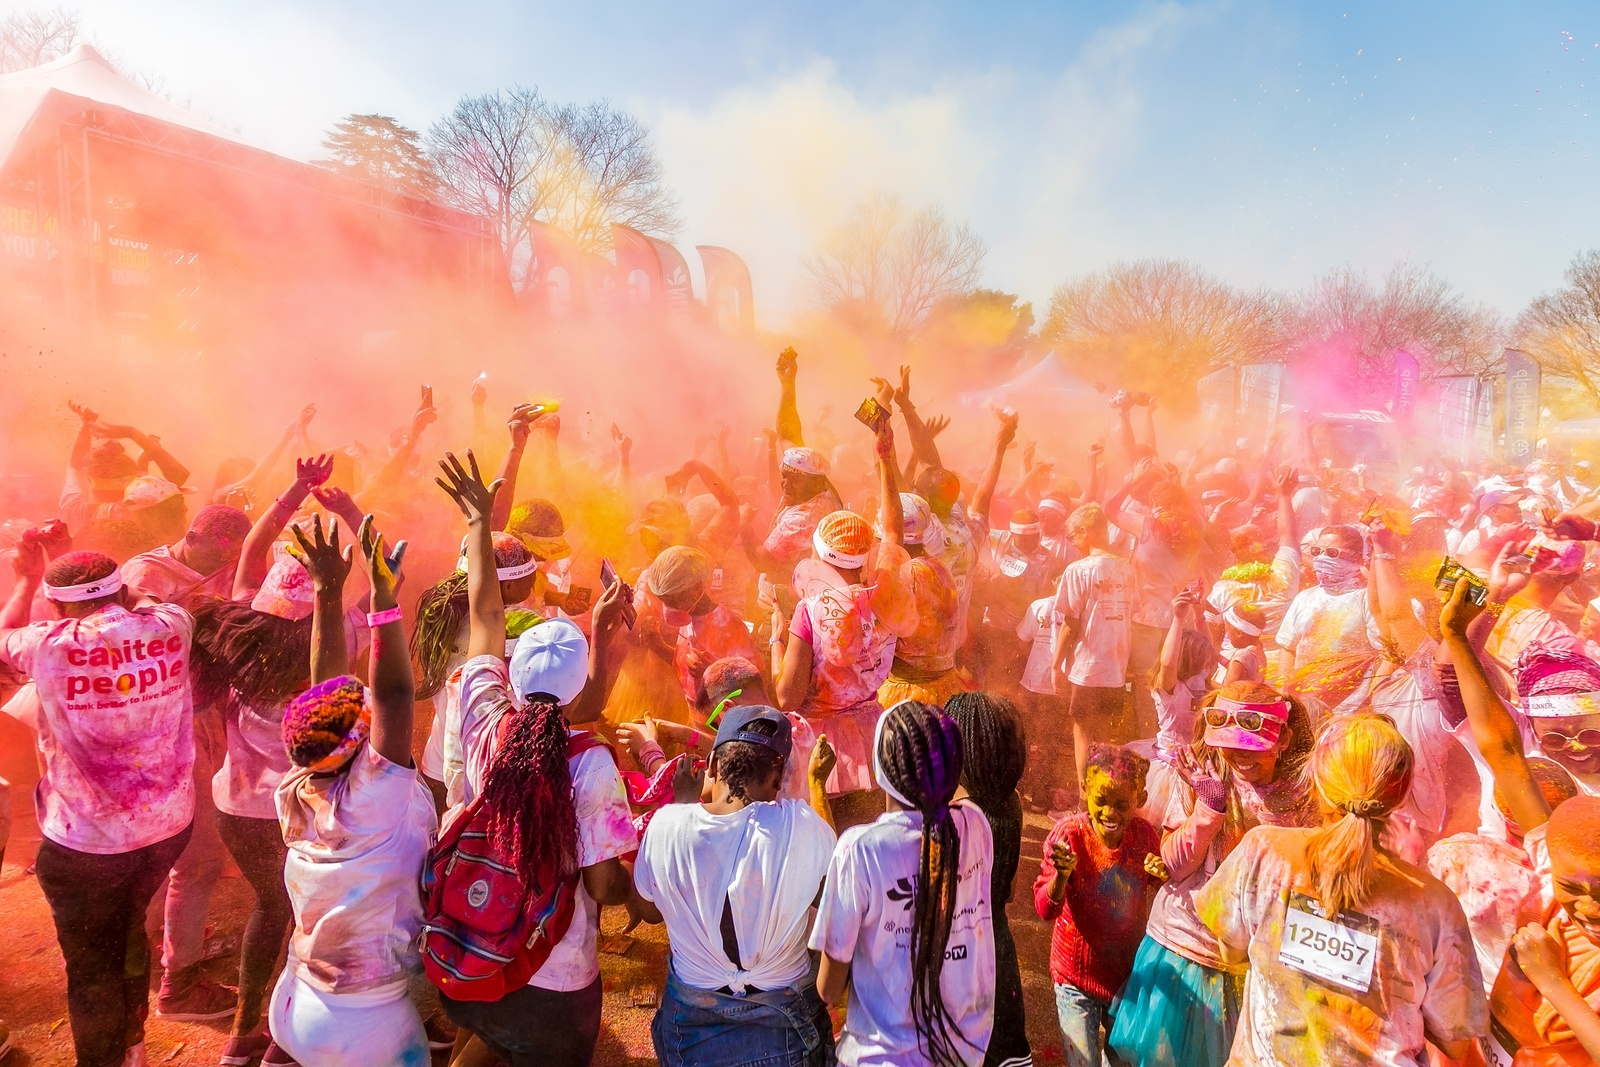 Johanneburg, South Africa, 05/21/2017, Young people having fun at The Color Run 5km Marathon, Bright color paint all over a large crowd © The Light Writer 33